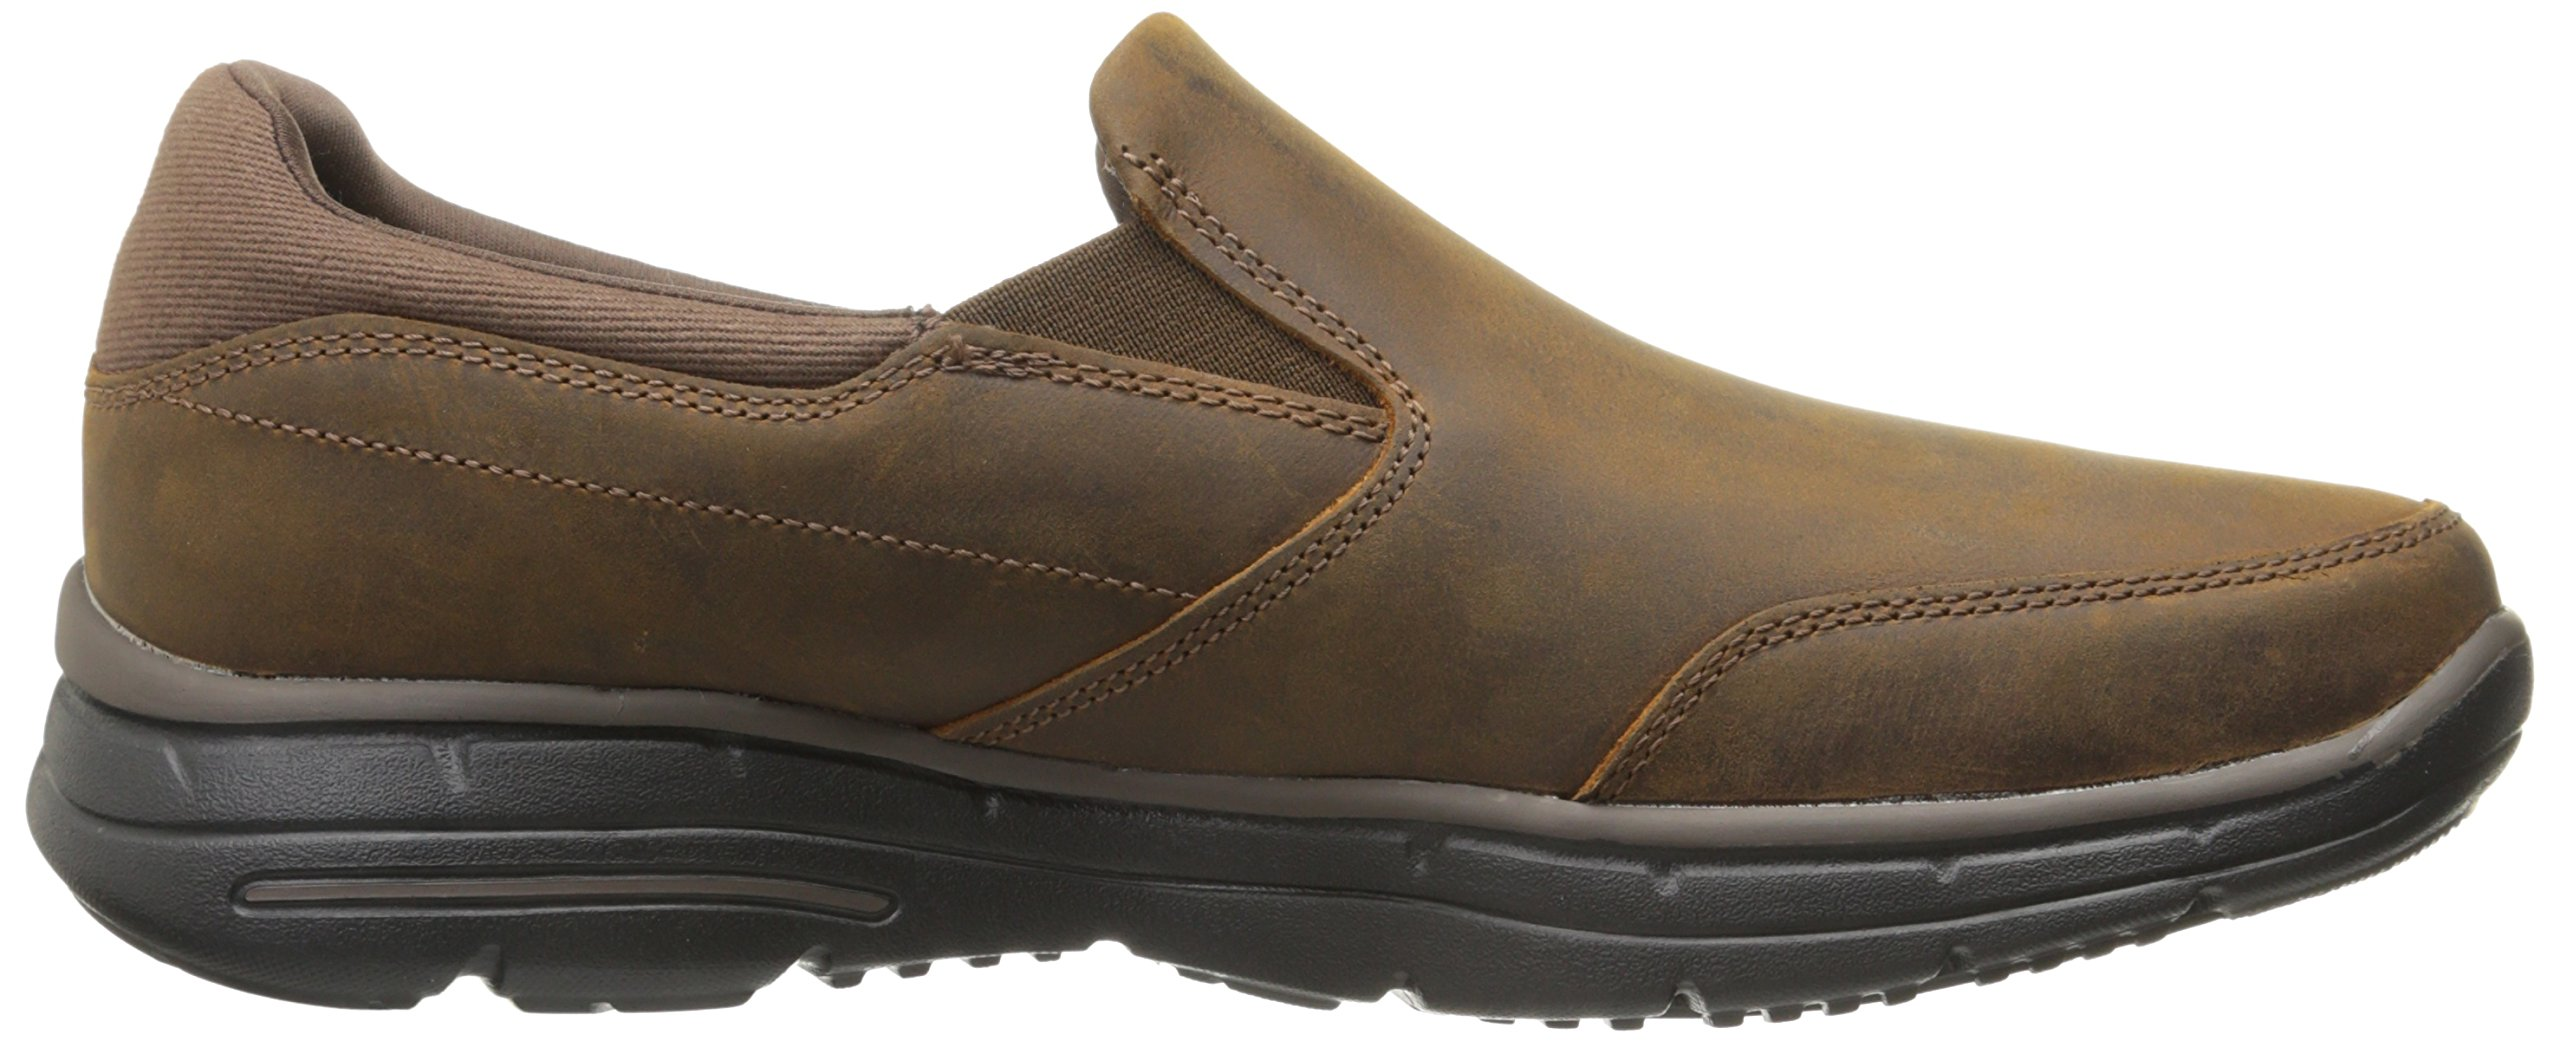 7b874dd056b Skechers Men s Relaxed Fit Glides Calculous